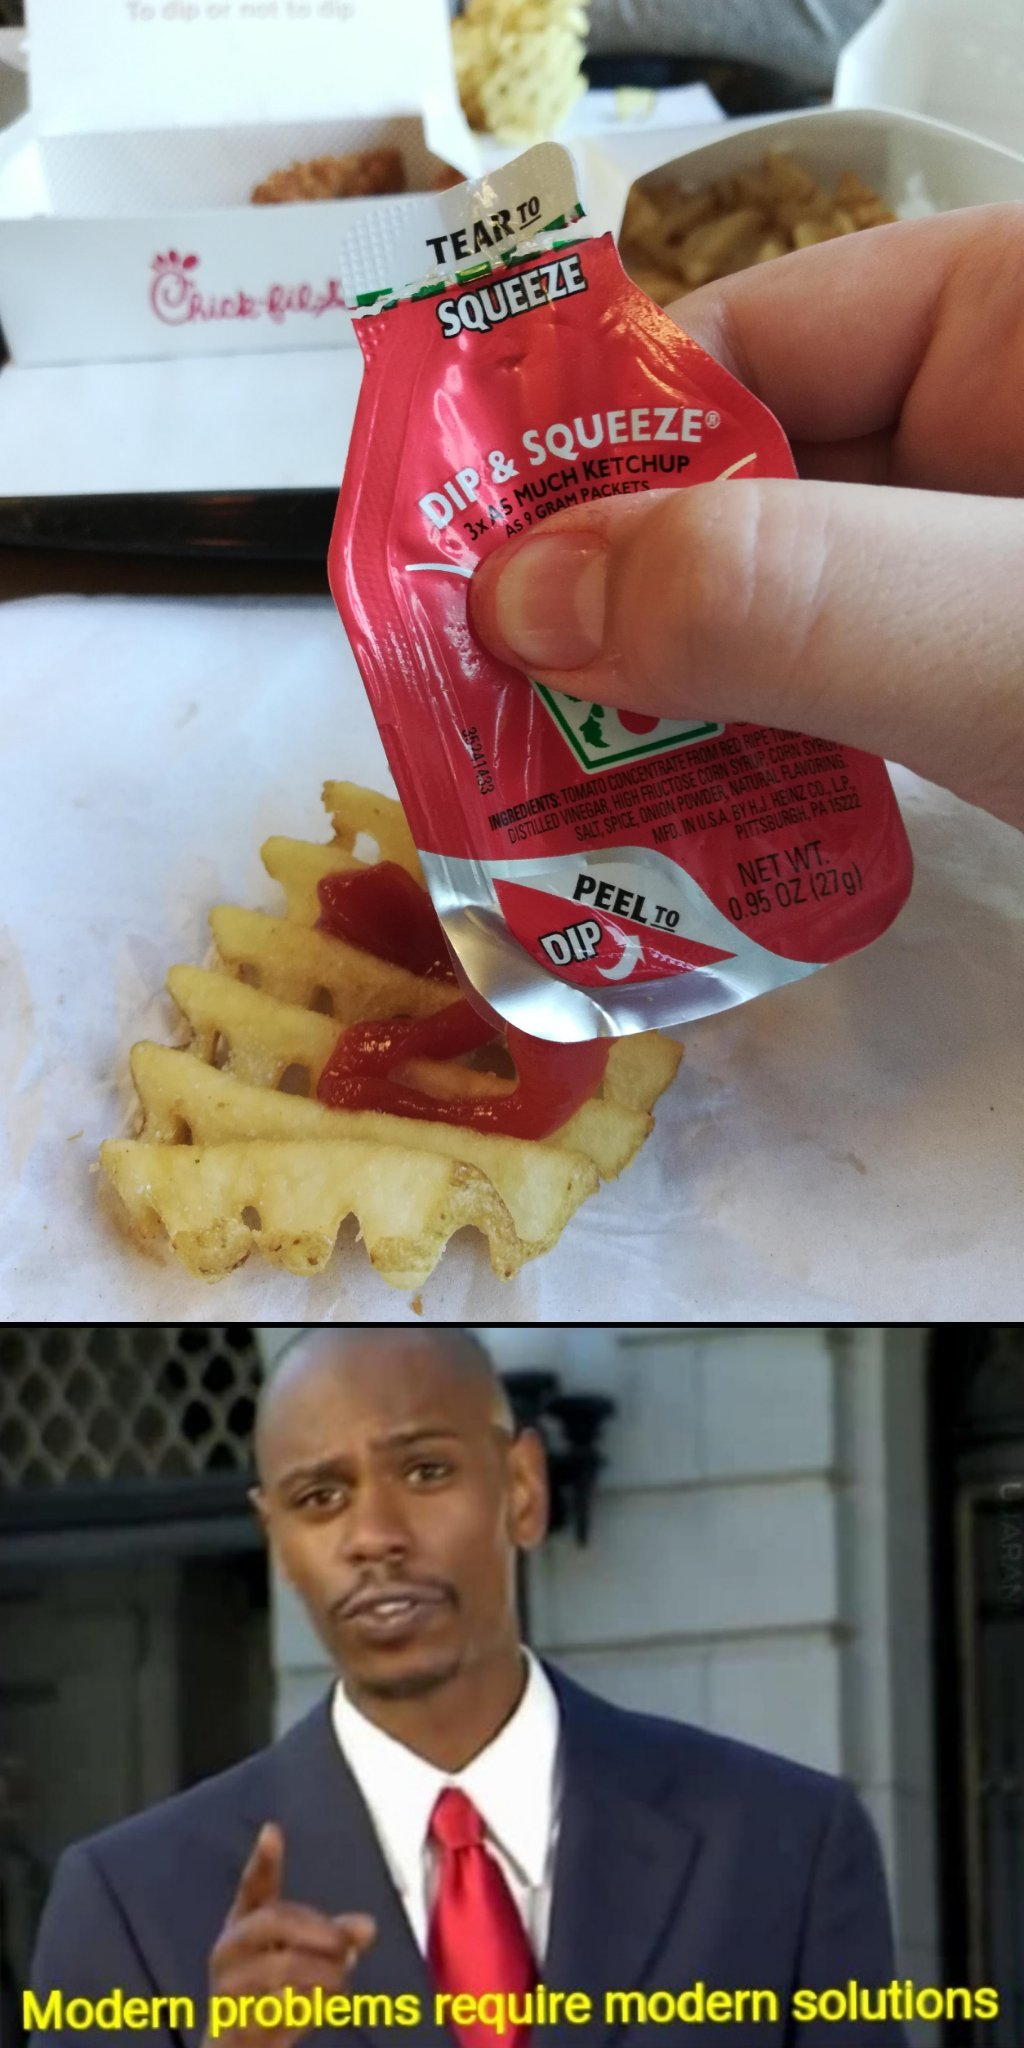 Those Darn Chick-fil-a Ketchup packets - meme